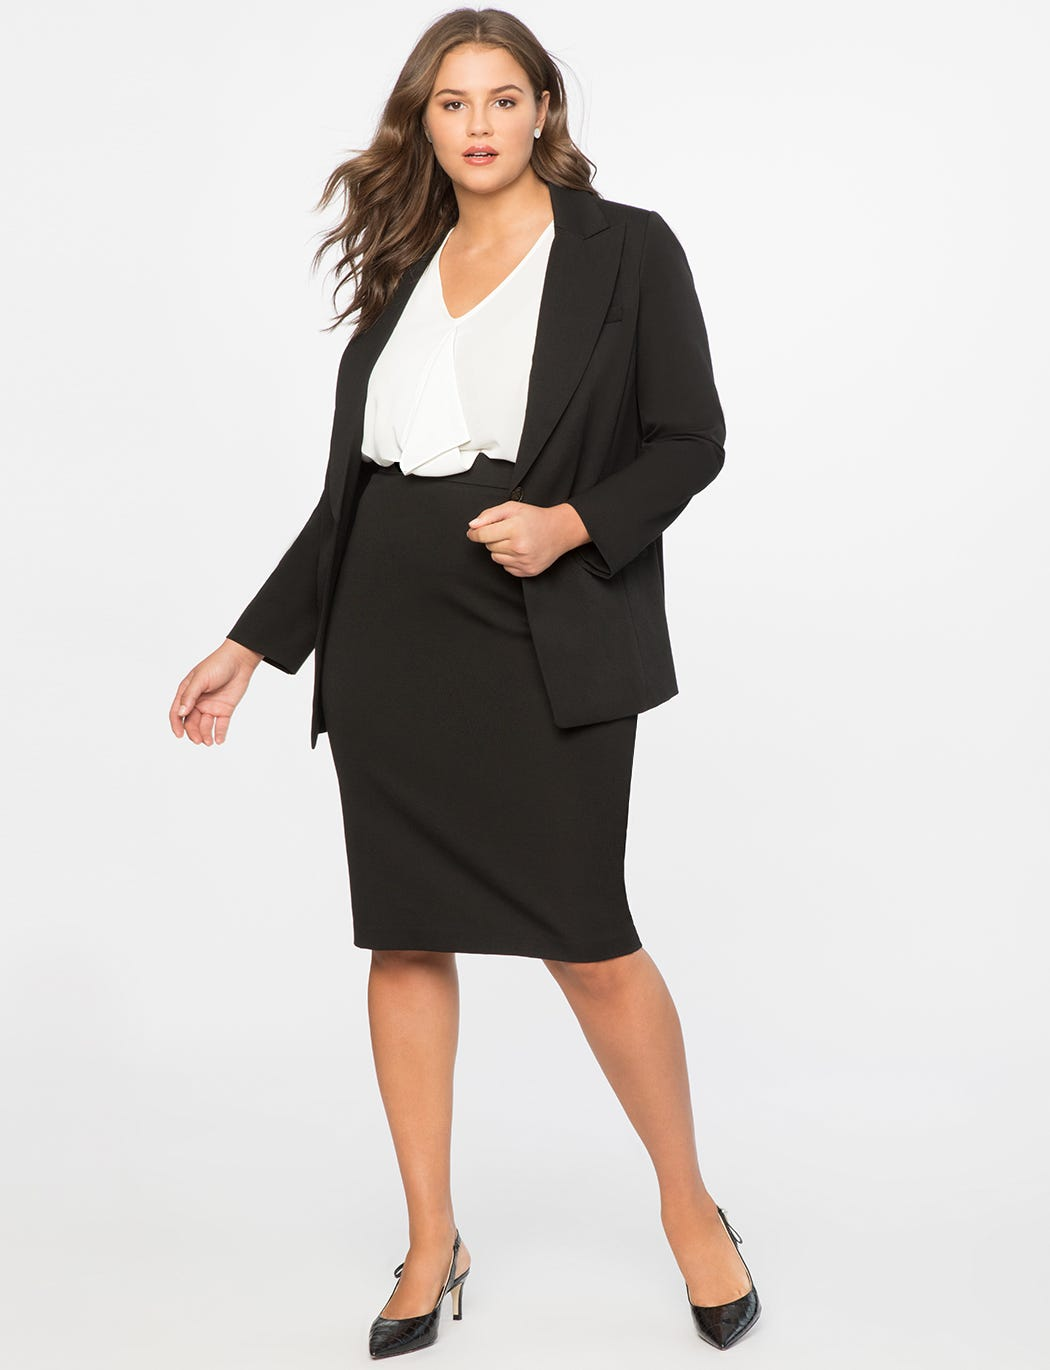 5 Plus-Size-Friendly Workwear Brands You Should Be